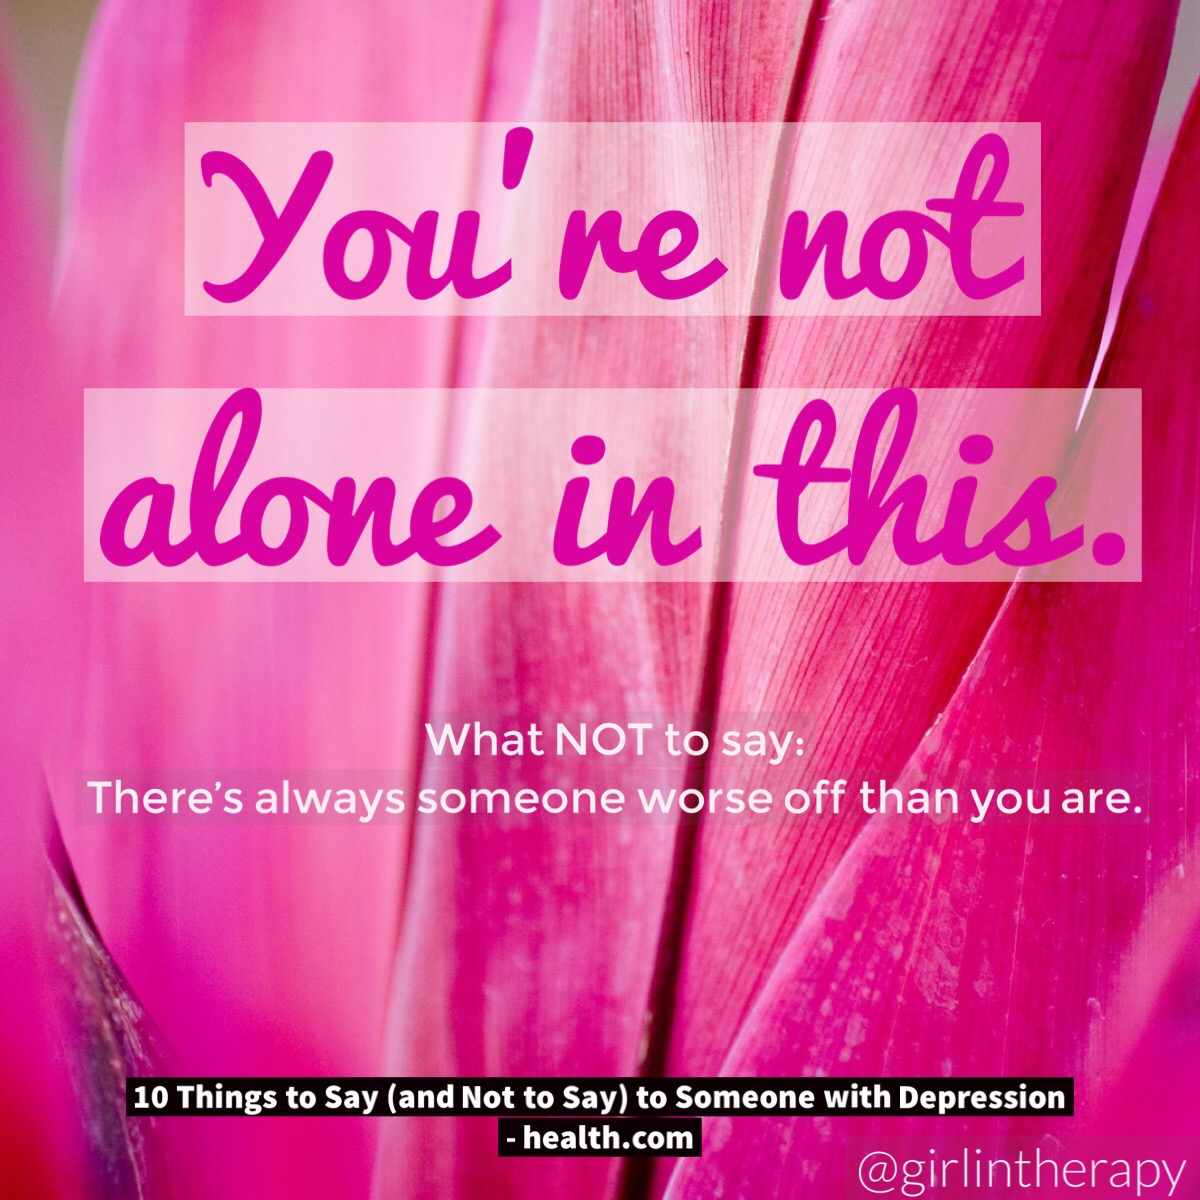 How to help someone in Depression - You're not alone in this